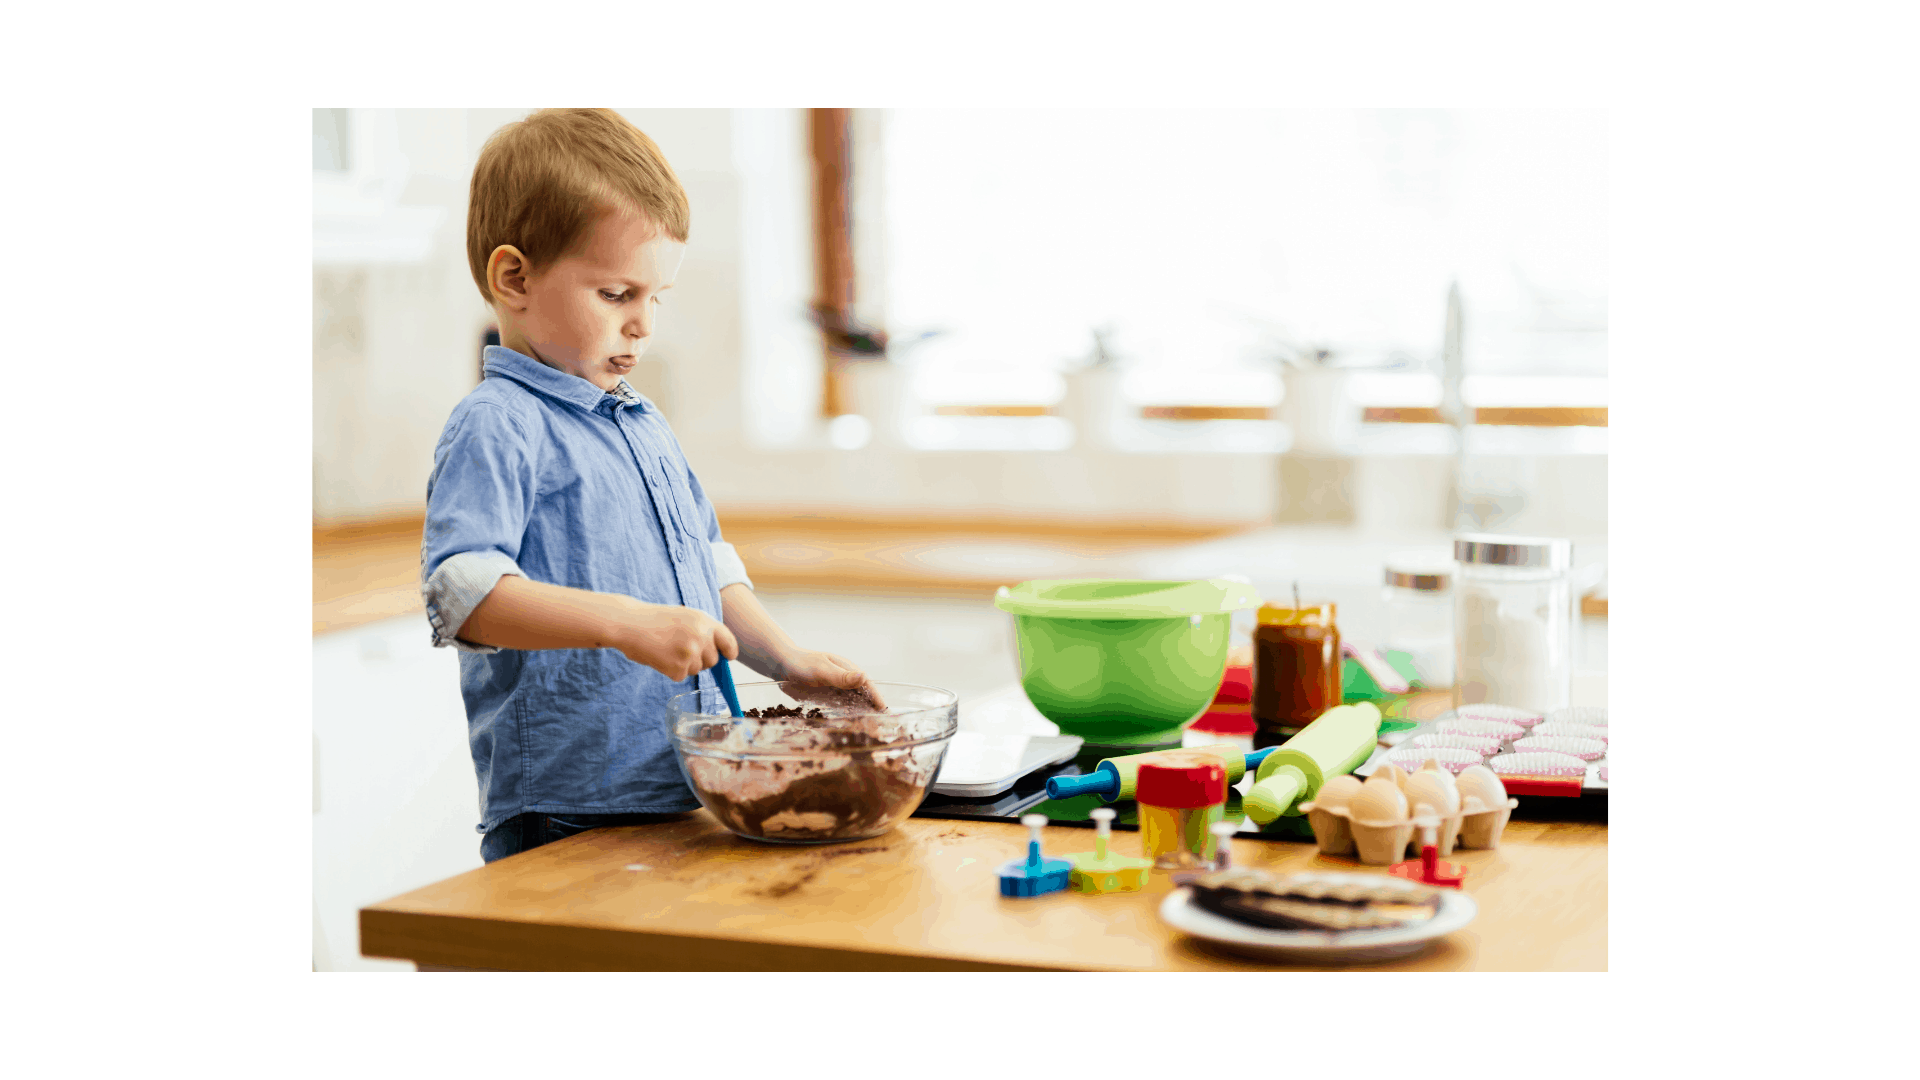 montessori learning in the kitchen